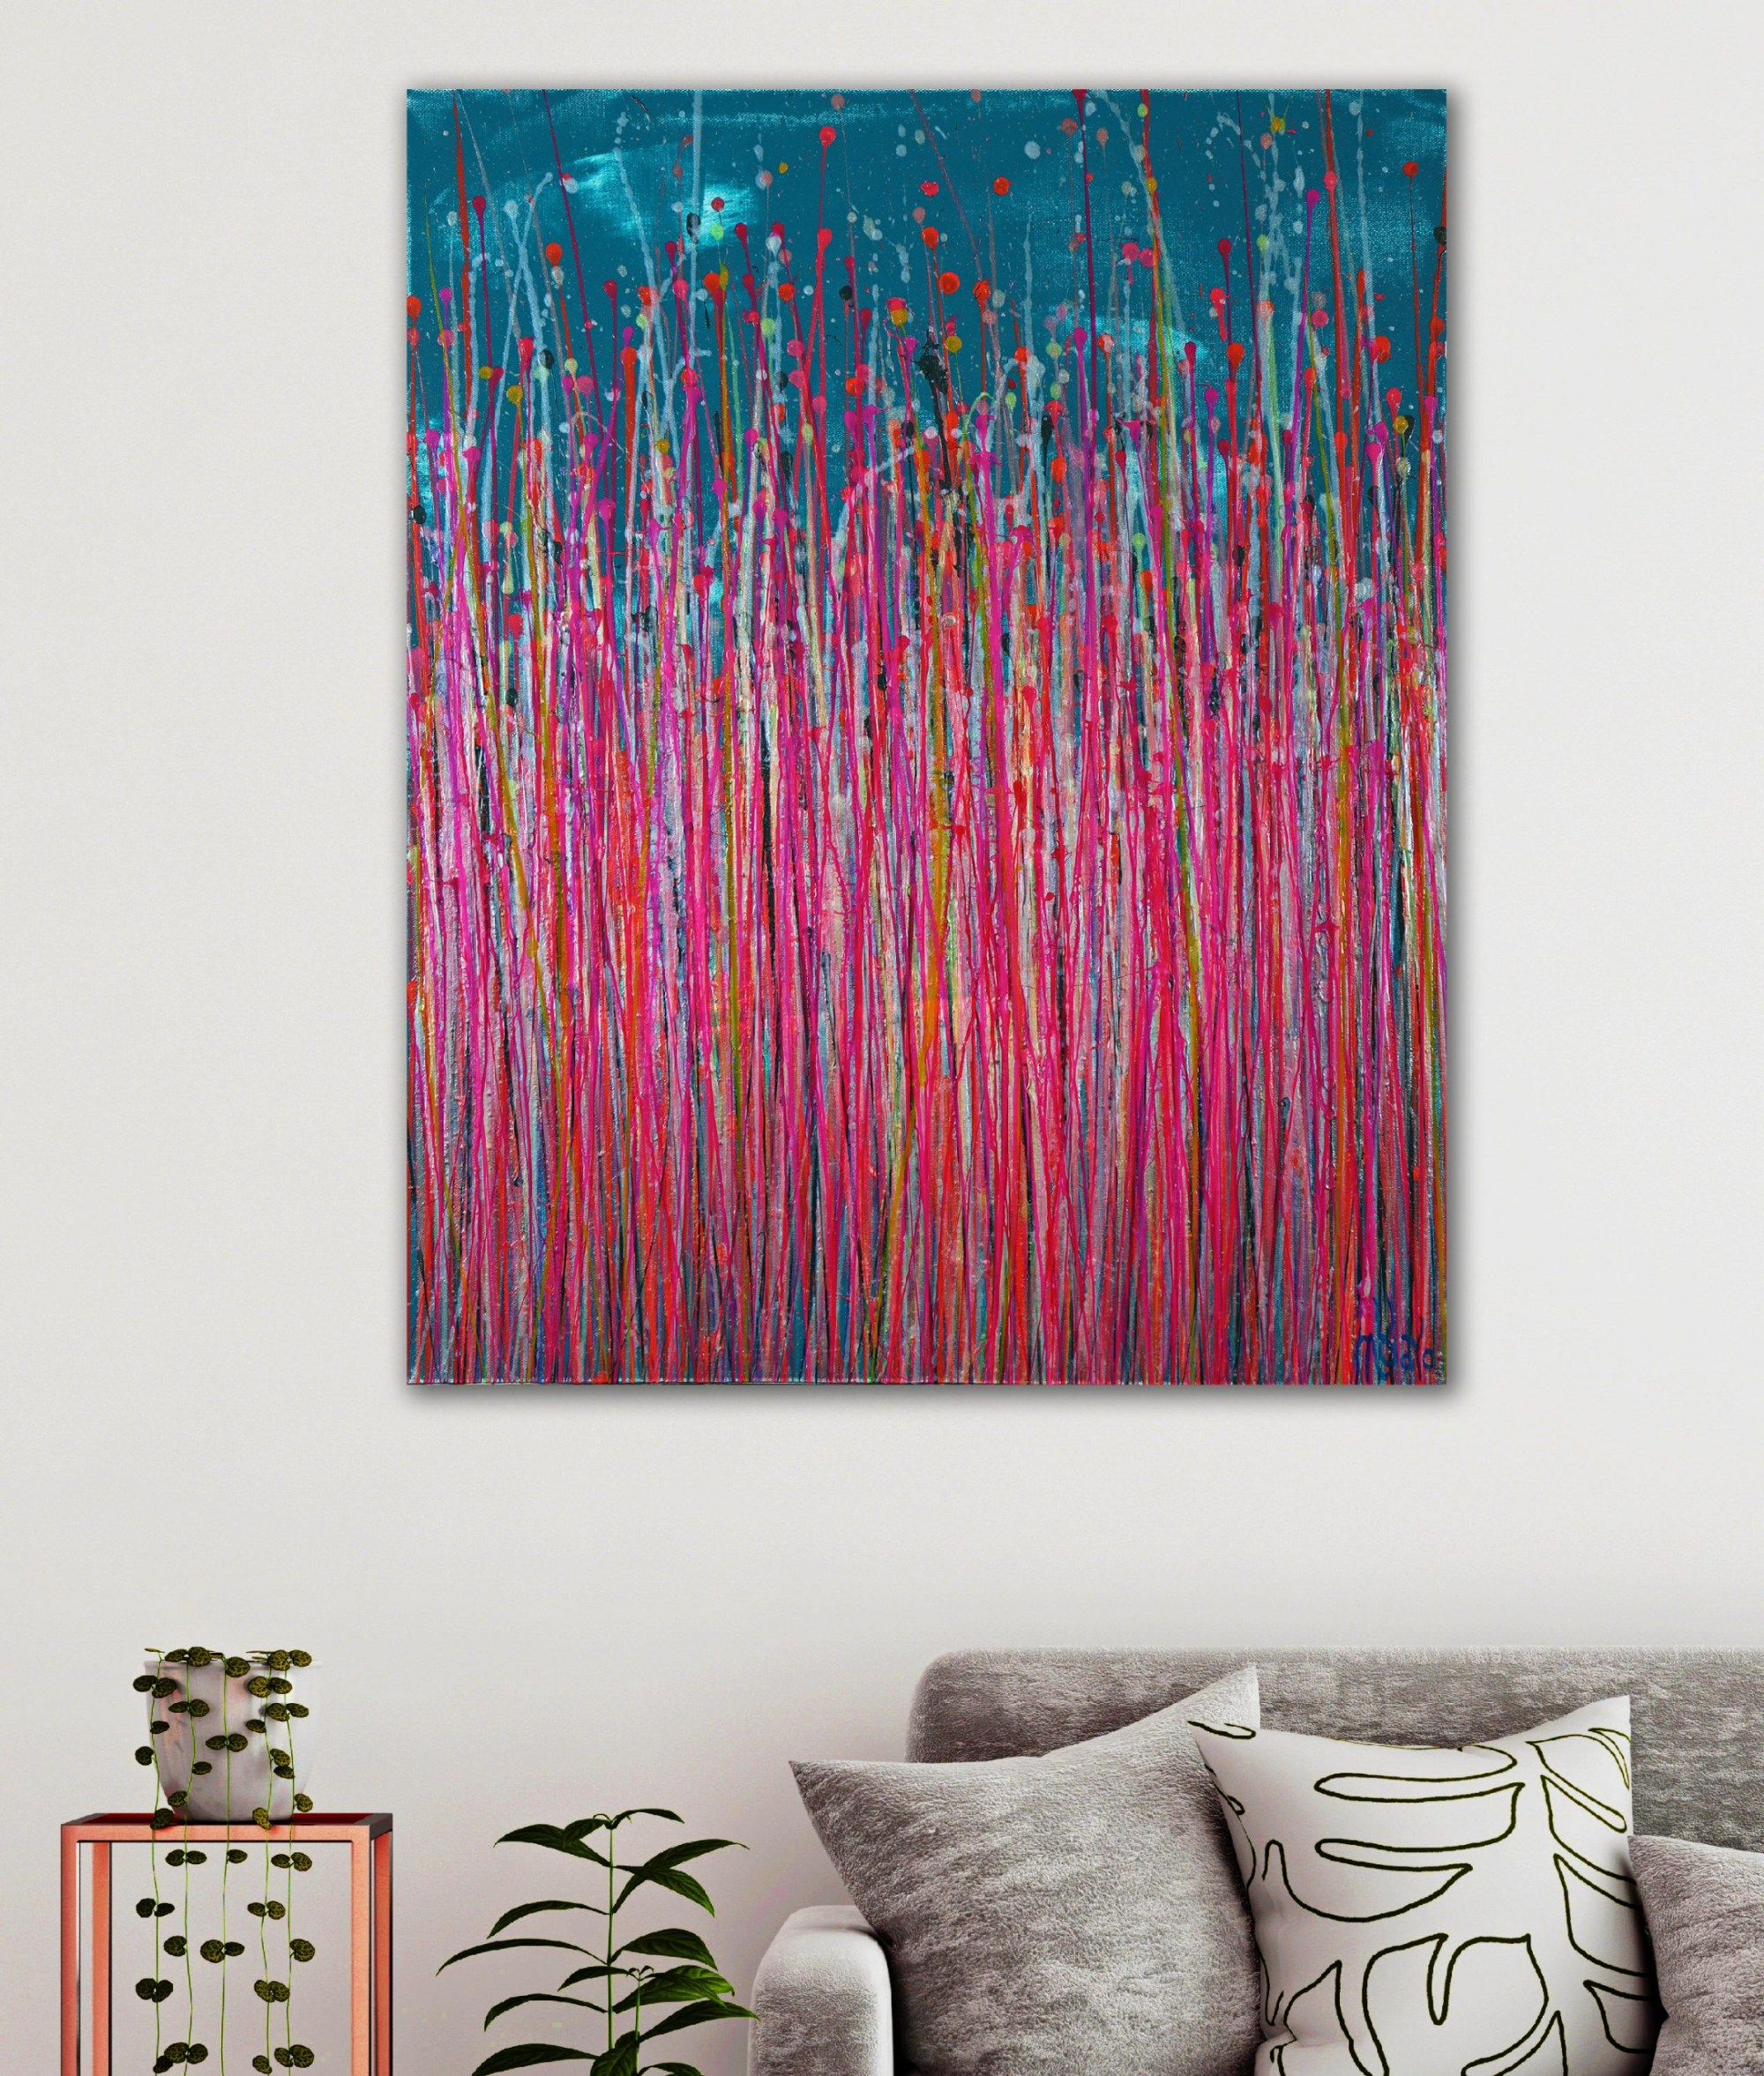 Room example / Pink Takeover (Over Silver Blue) 4 (2021) by Nestor Toro